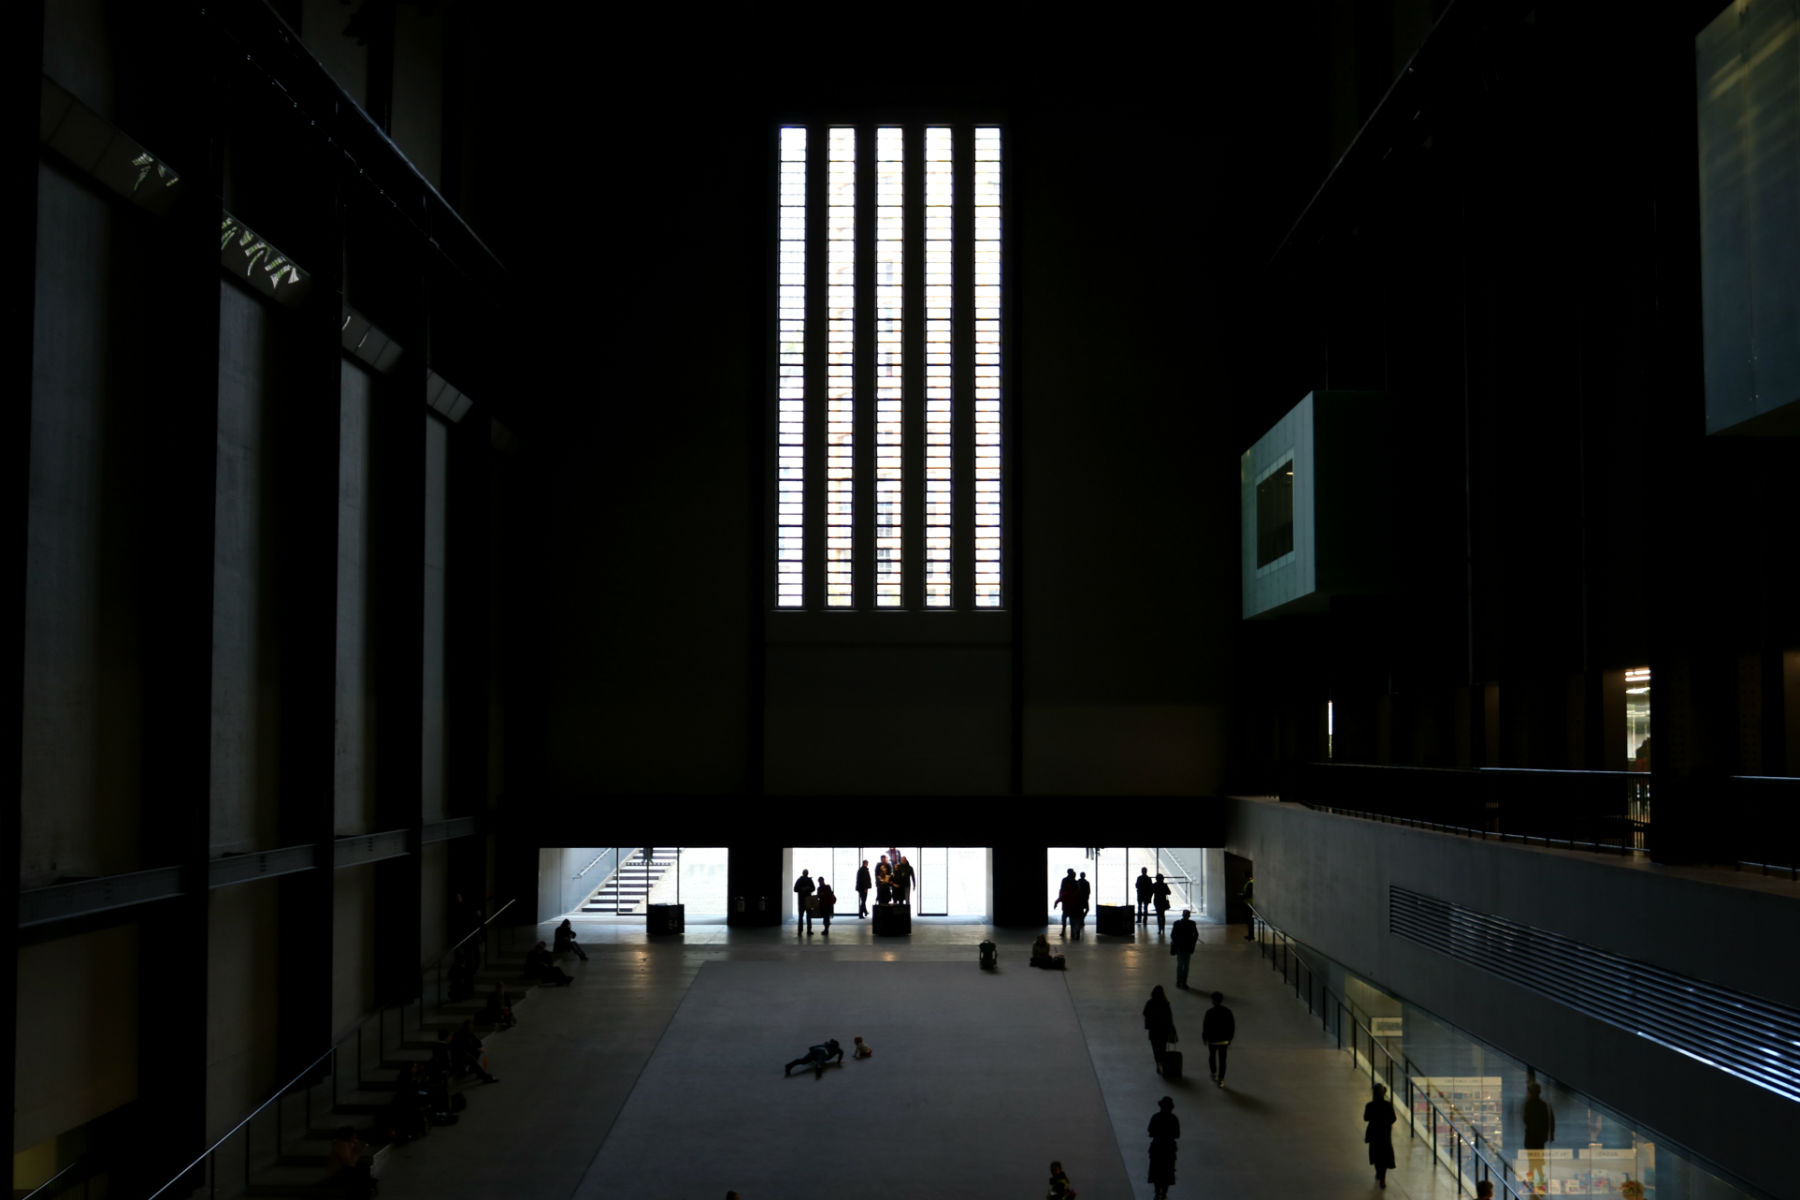 The Great Hall at Tate Modern, London Bankside